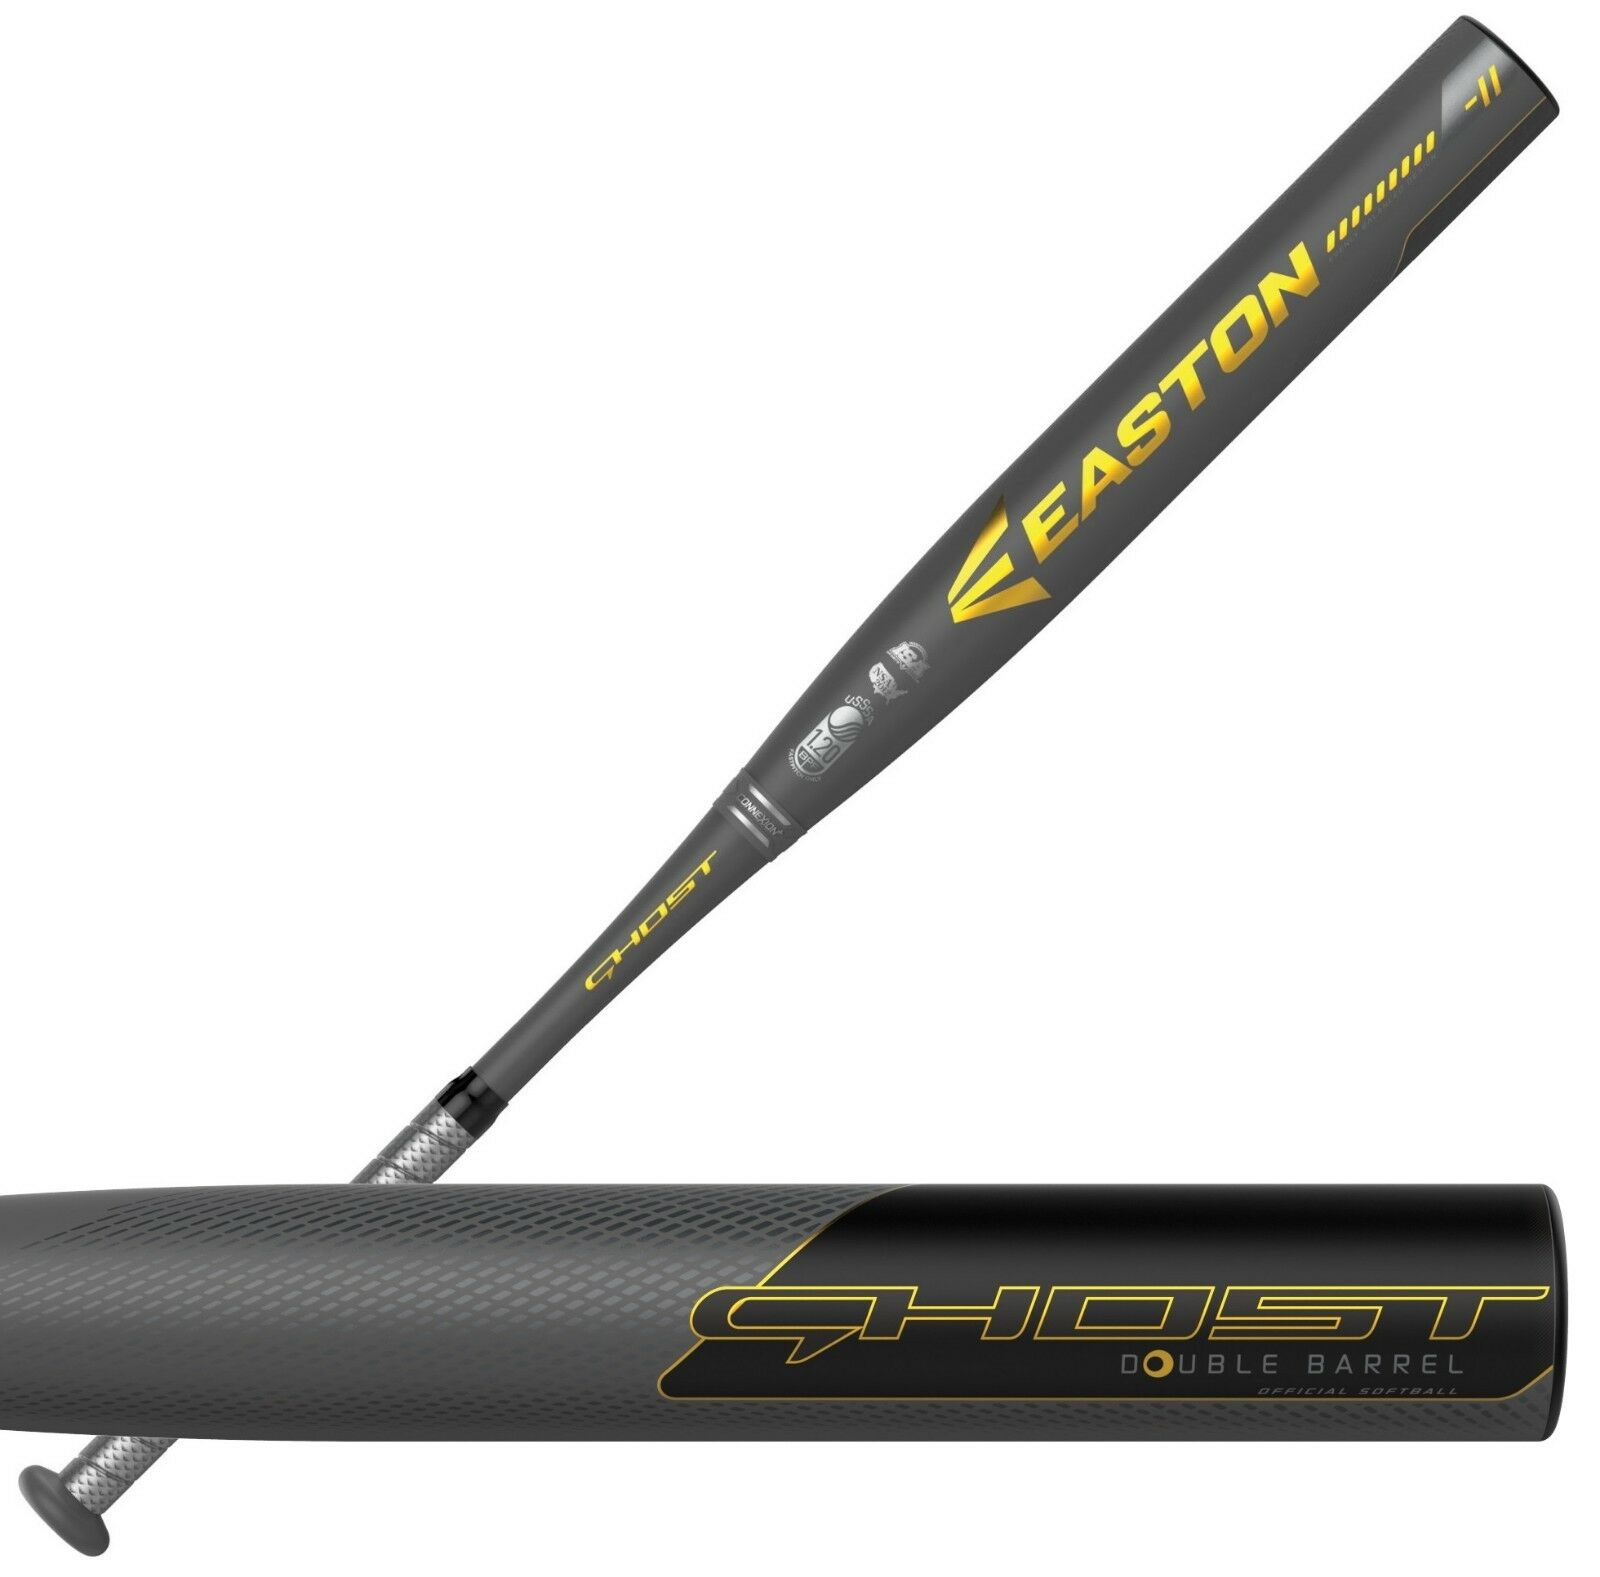 2019 Easton Ghost -11 USSSA 29  18 oz. Fastpitch Softball Bat FP19GHU11